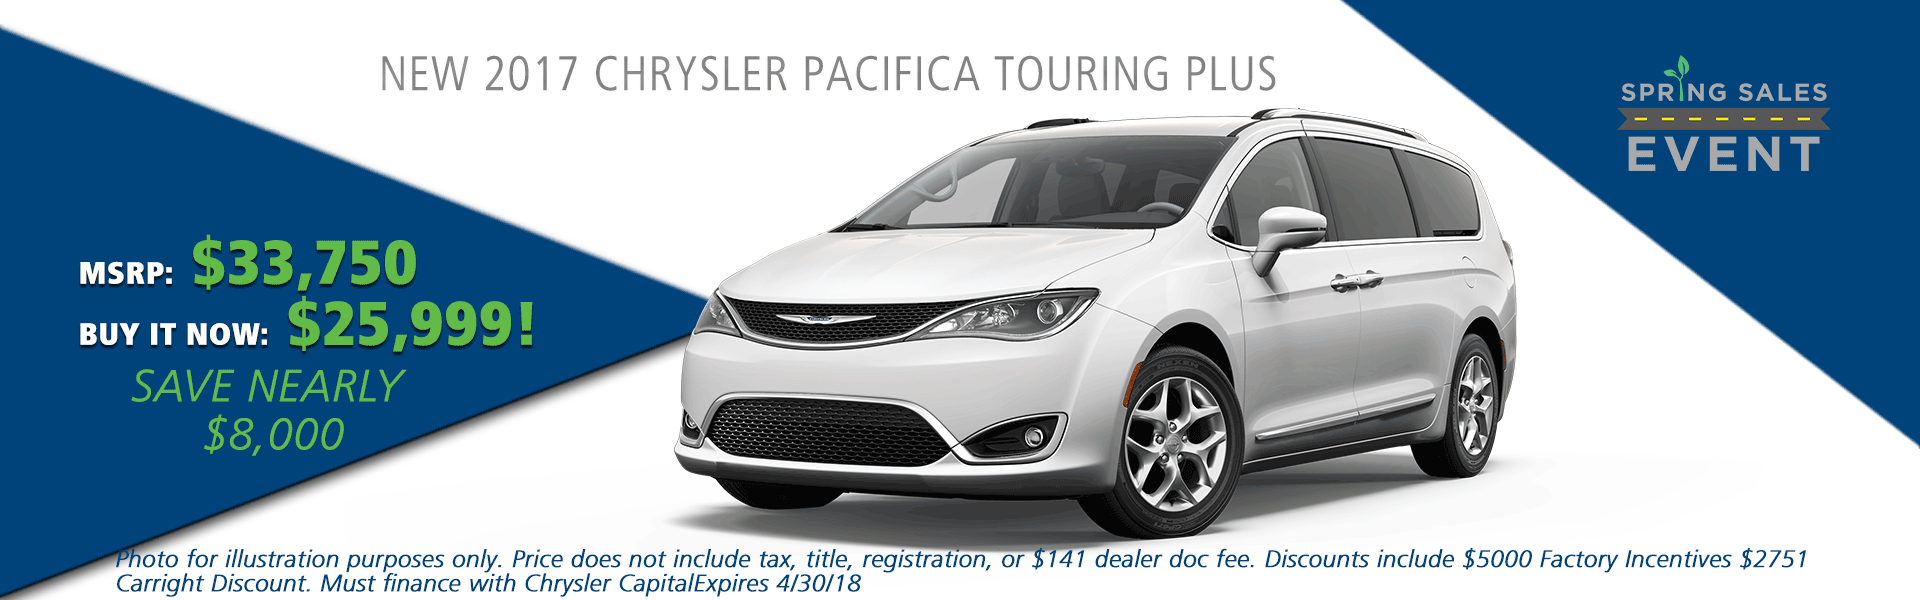 NEW 2017 CHRYSLER PACIFICA TOURING PLUS carright auto 5408 university blvd moon, pa 15108 chrysler dodge jeep ram